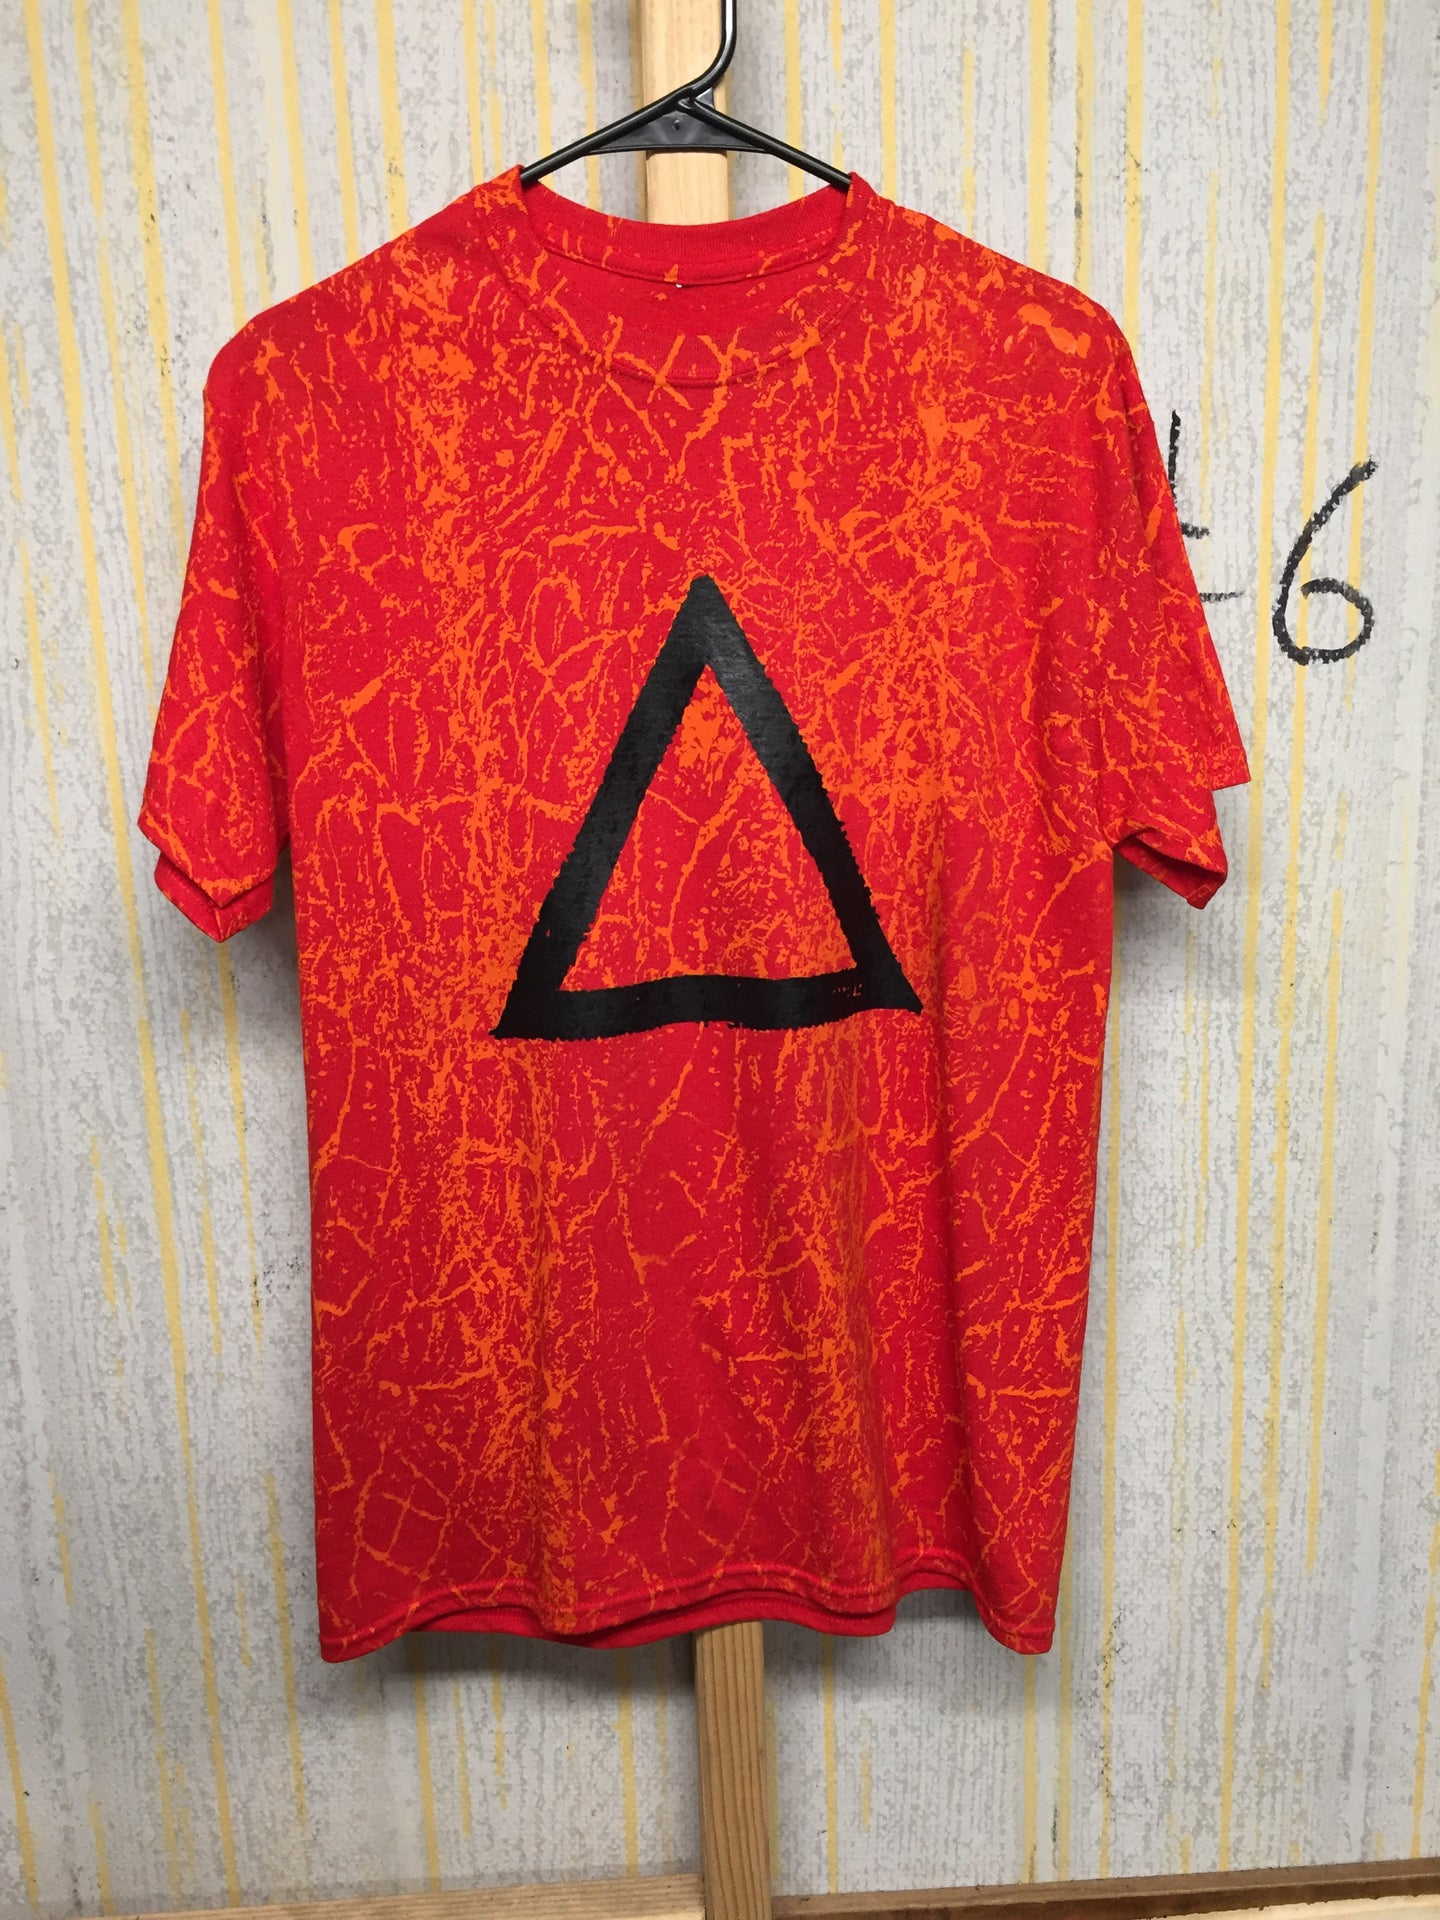 Fire sign shirt